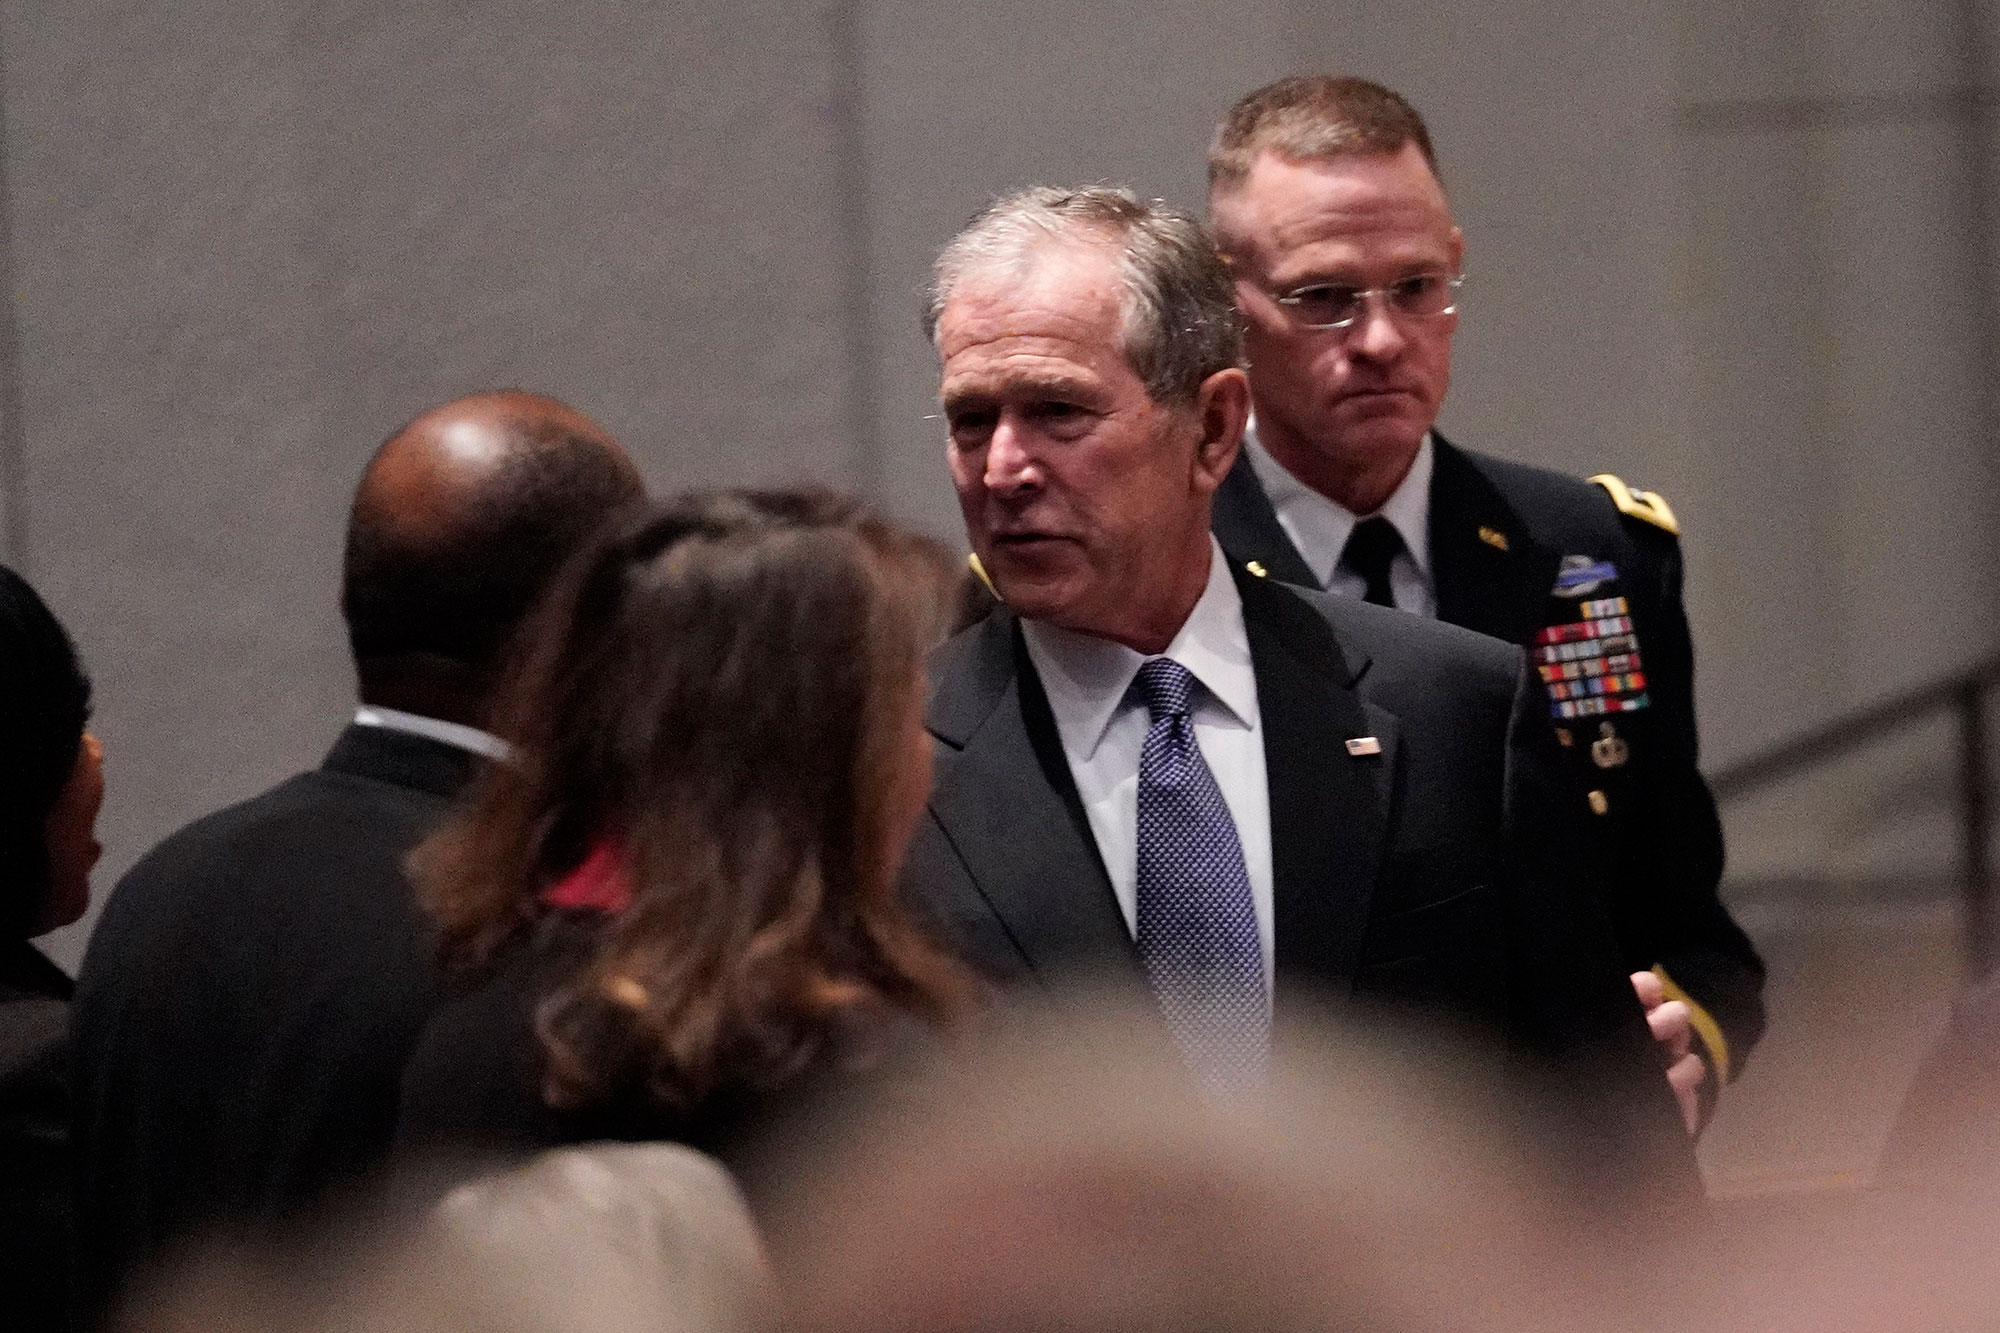 "<div class=""meta image-caption""><div class=""origin-logo origin-image none""><span>none</span></div><span class=""caption-text"">Former President George W. Bush arrives for a funeral service for former President George H.W. Bush at St. Martin's Episcopal Church Thursday, Dec. 6, 2018, in Houston. (David J. Phillip, Pool/AP Photo)</span></div>"